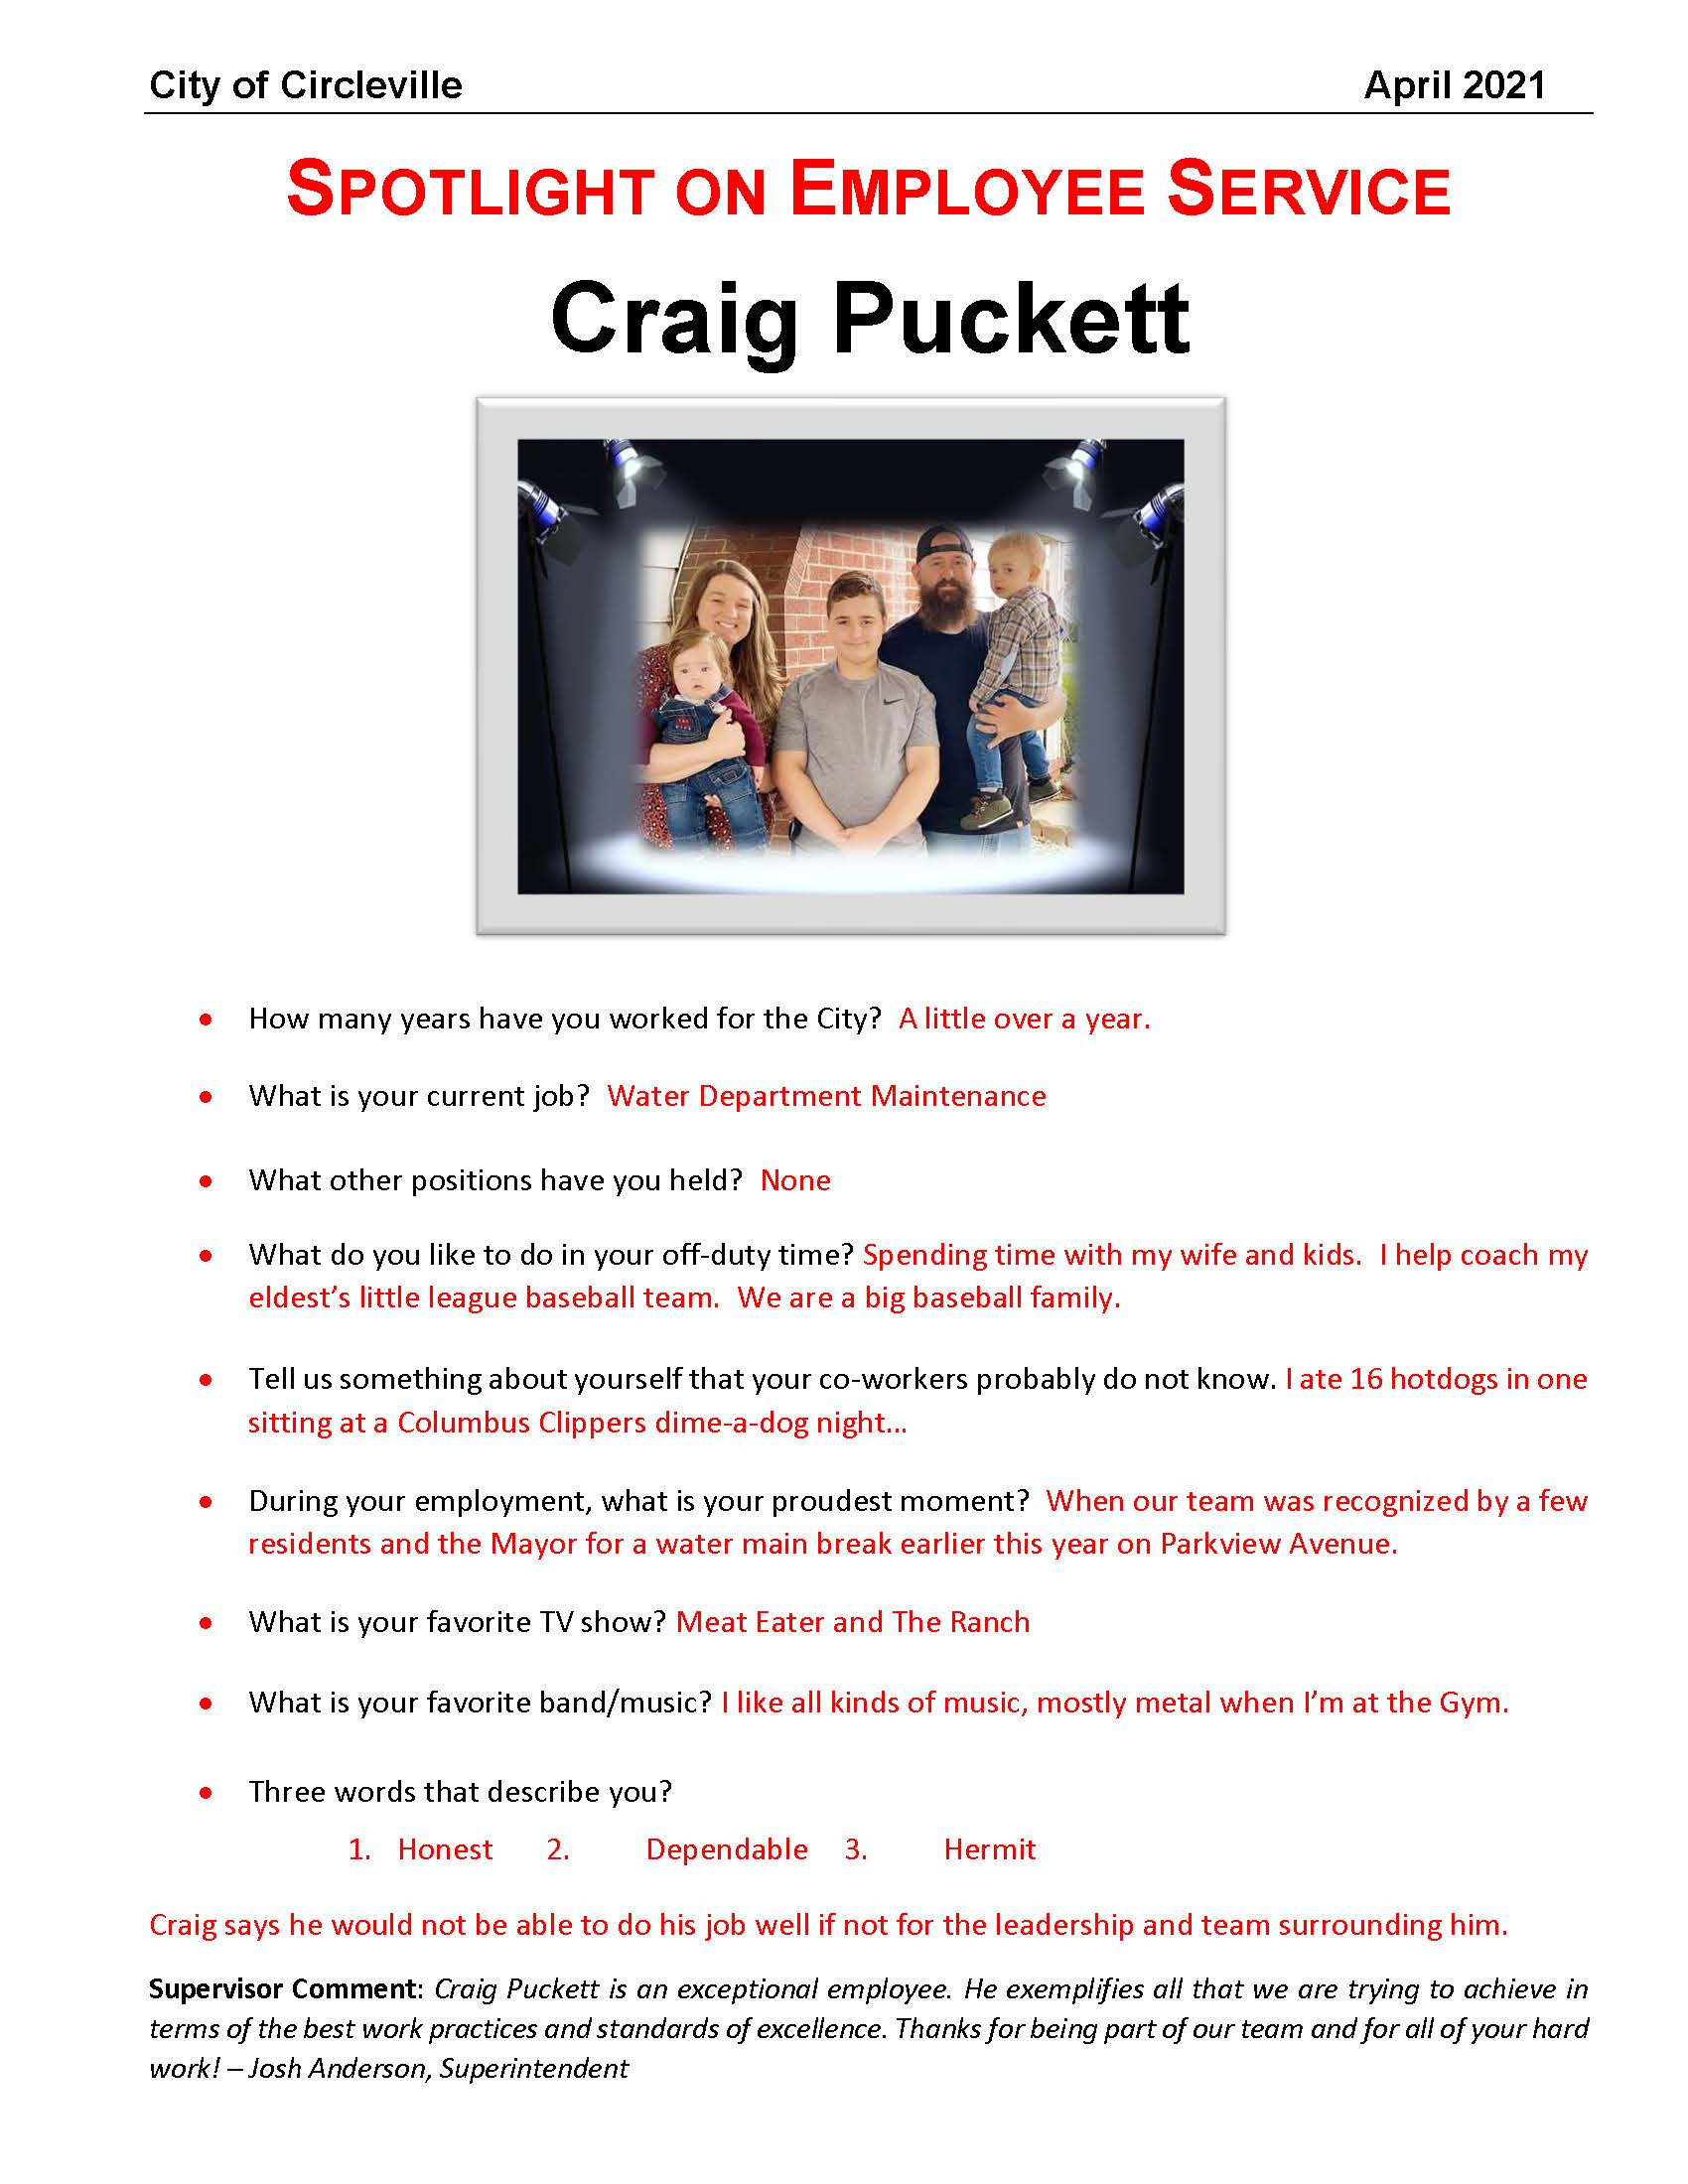 April 2021 - Craig Puckett